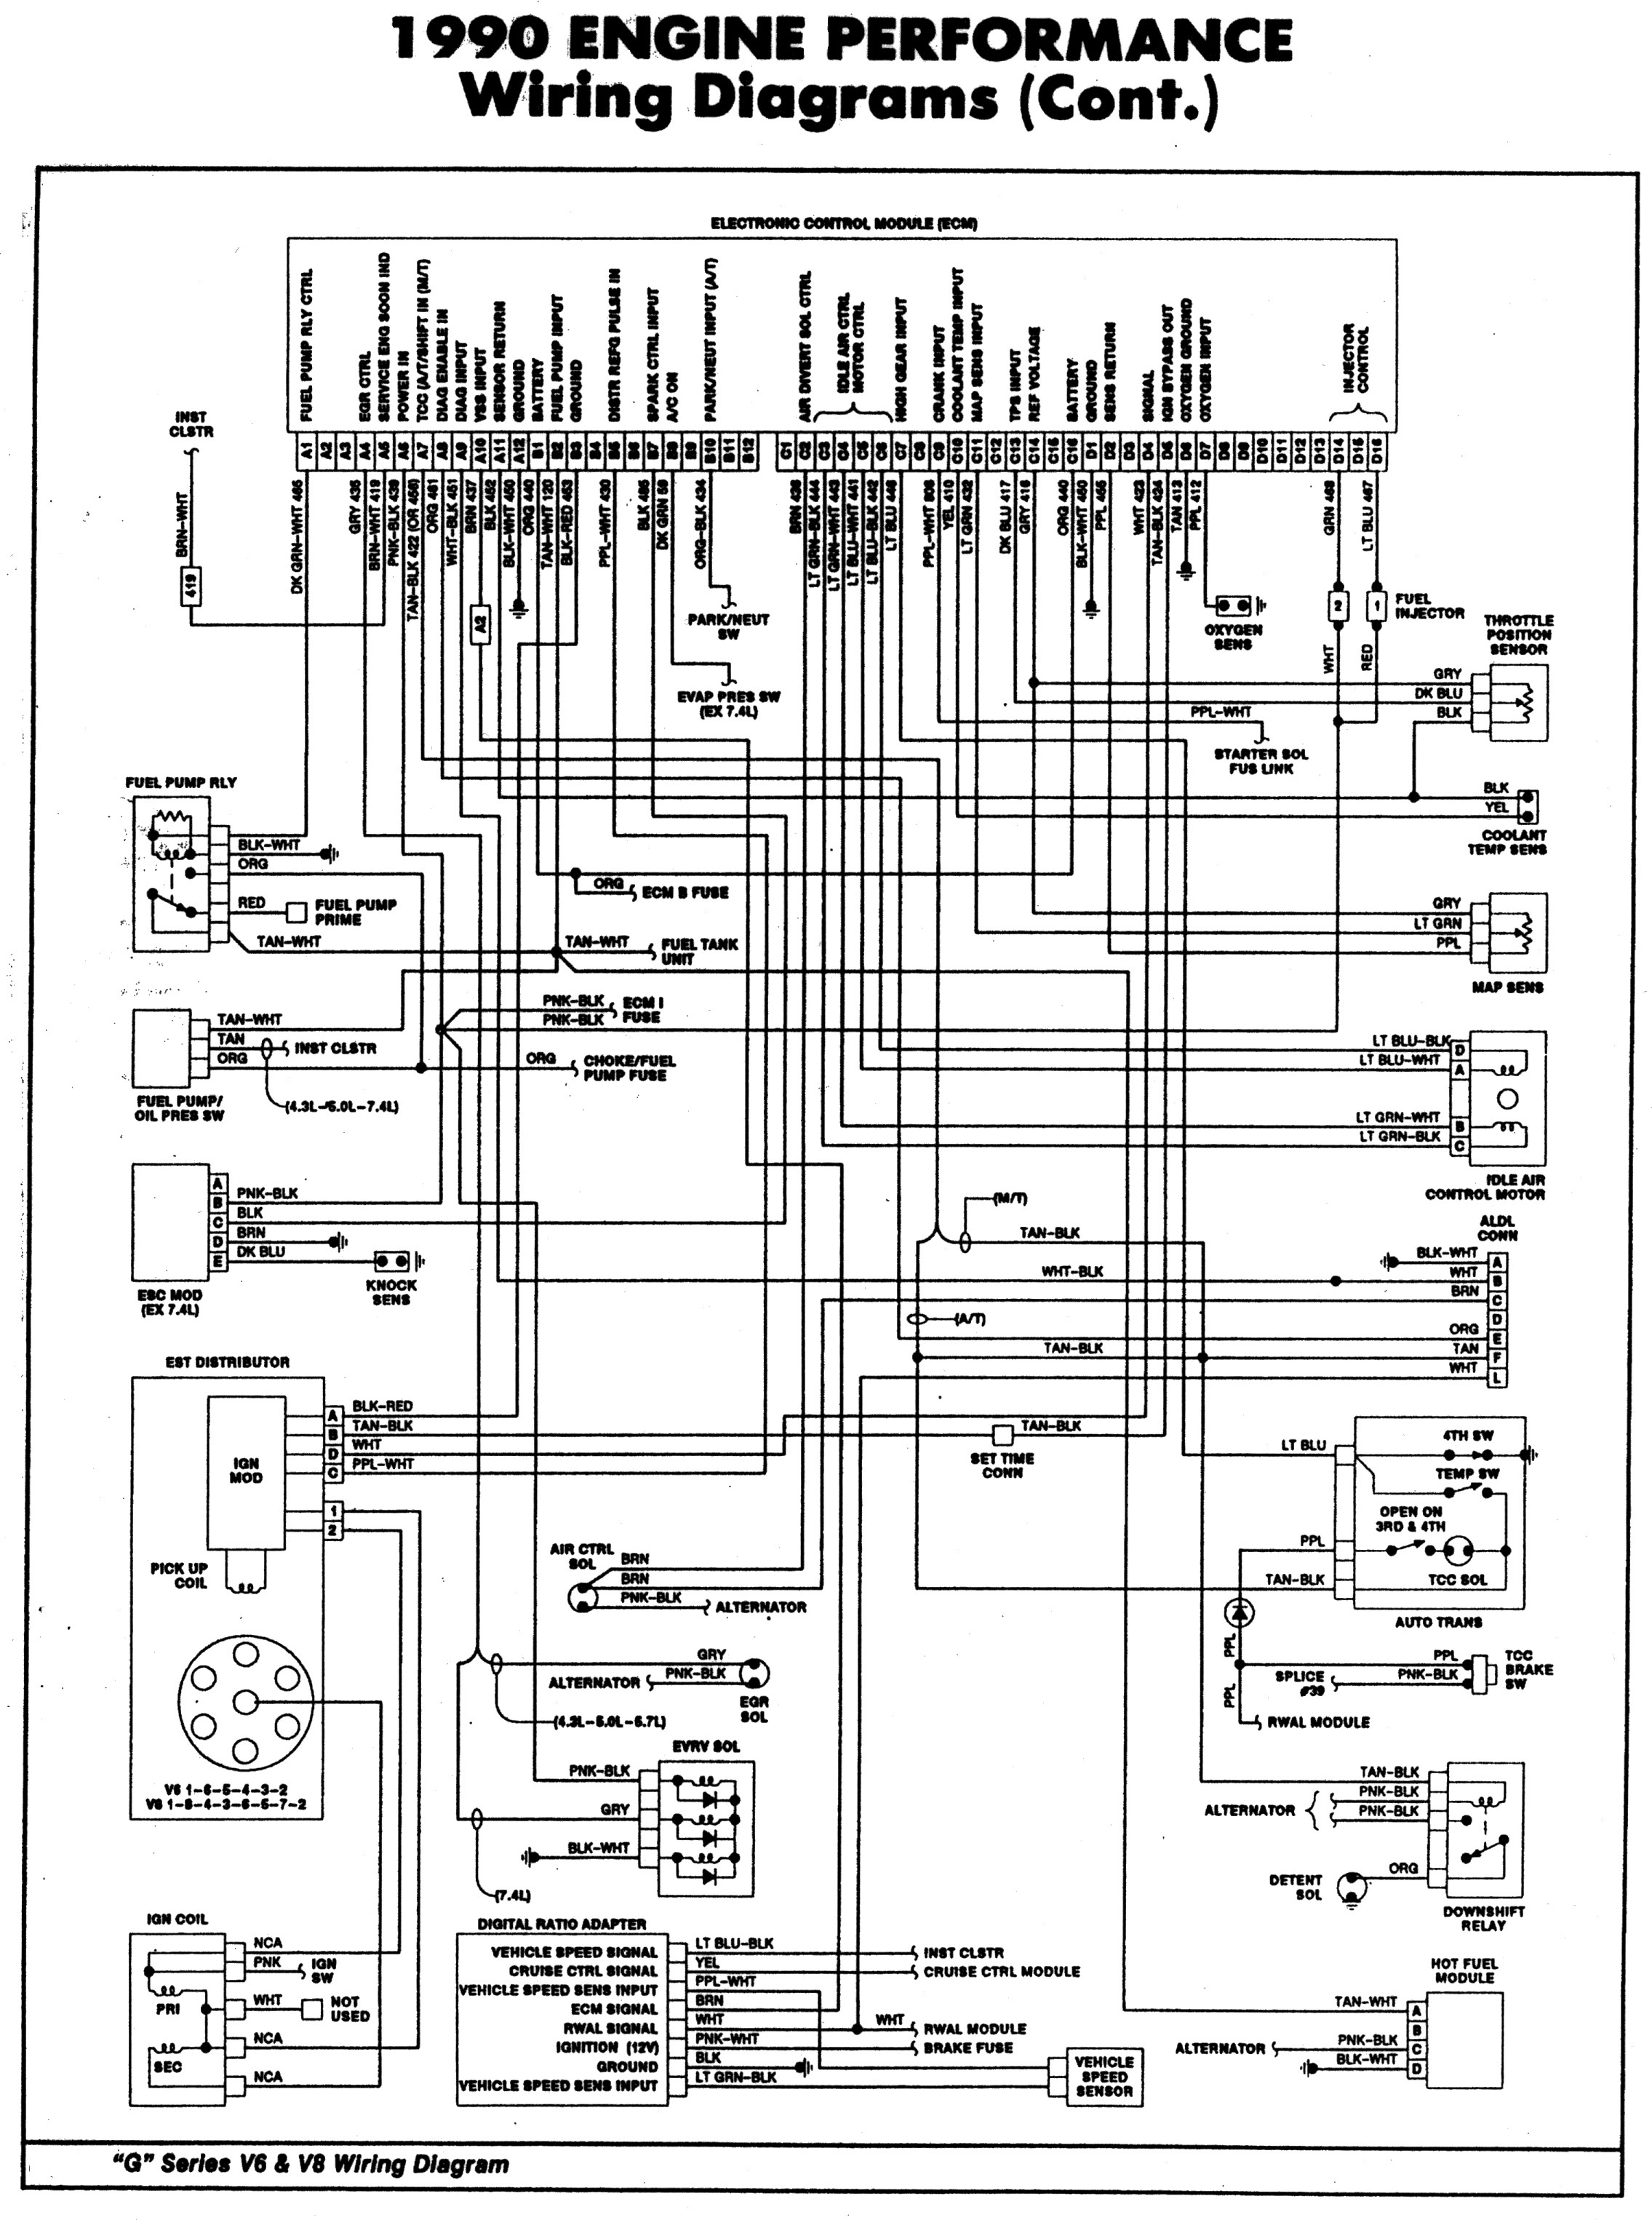 medium resolution of c1500 4 3l v6 wiring diagram wiring diagram part 1992 chevy c1500 4 3 wiring diagram